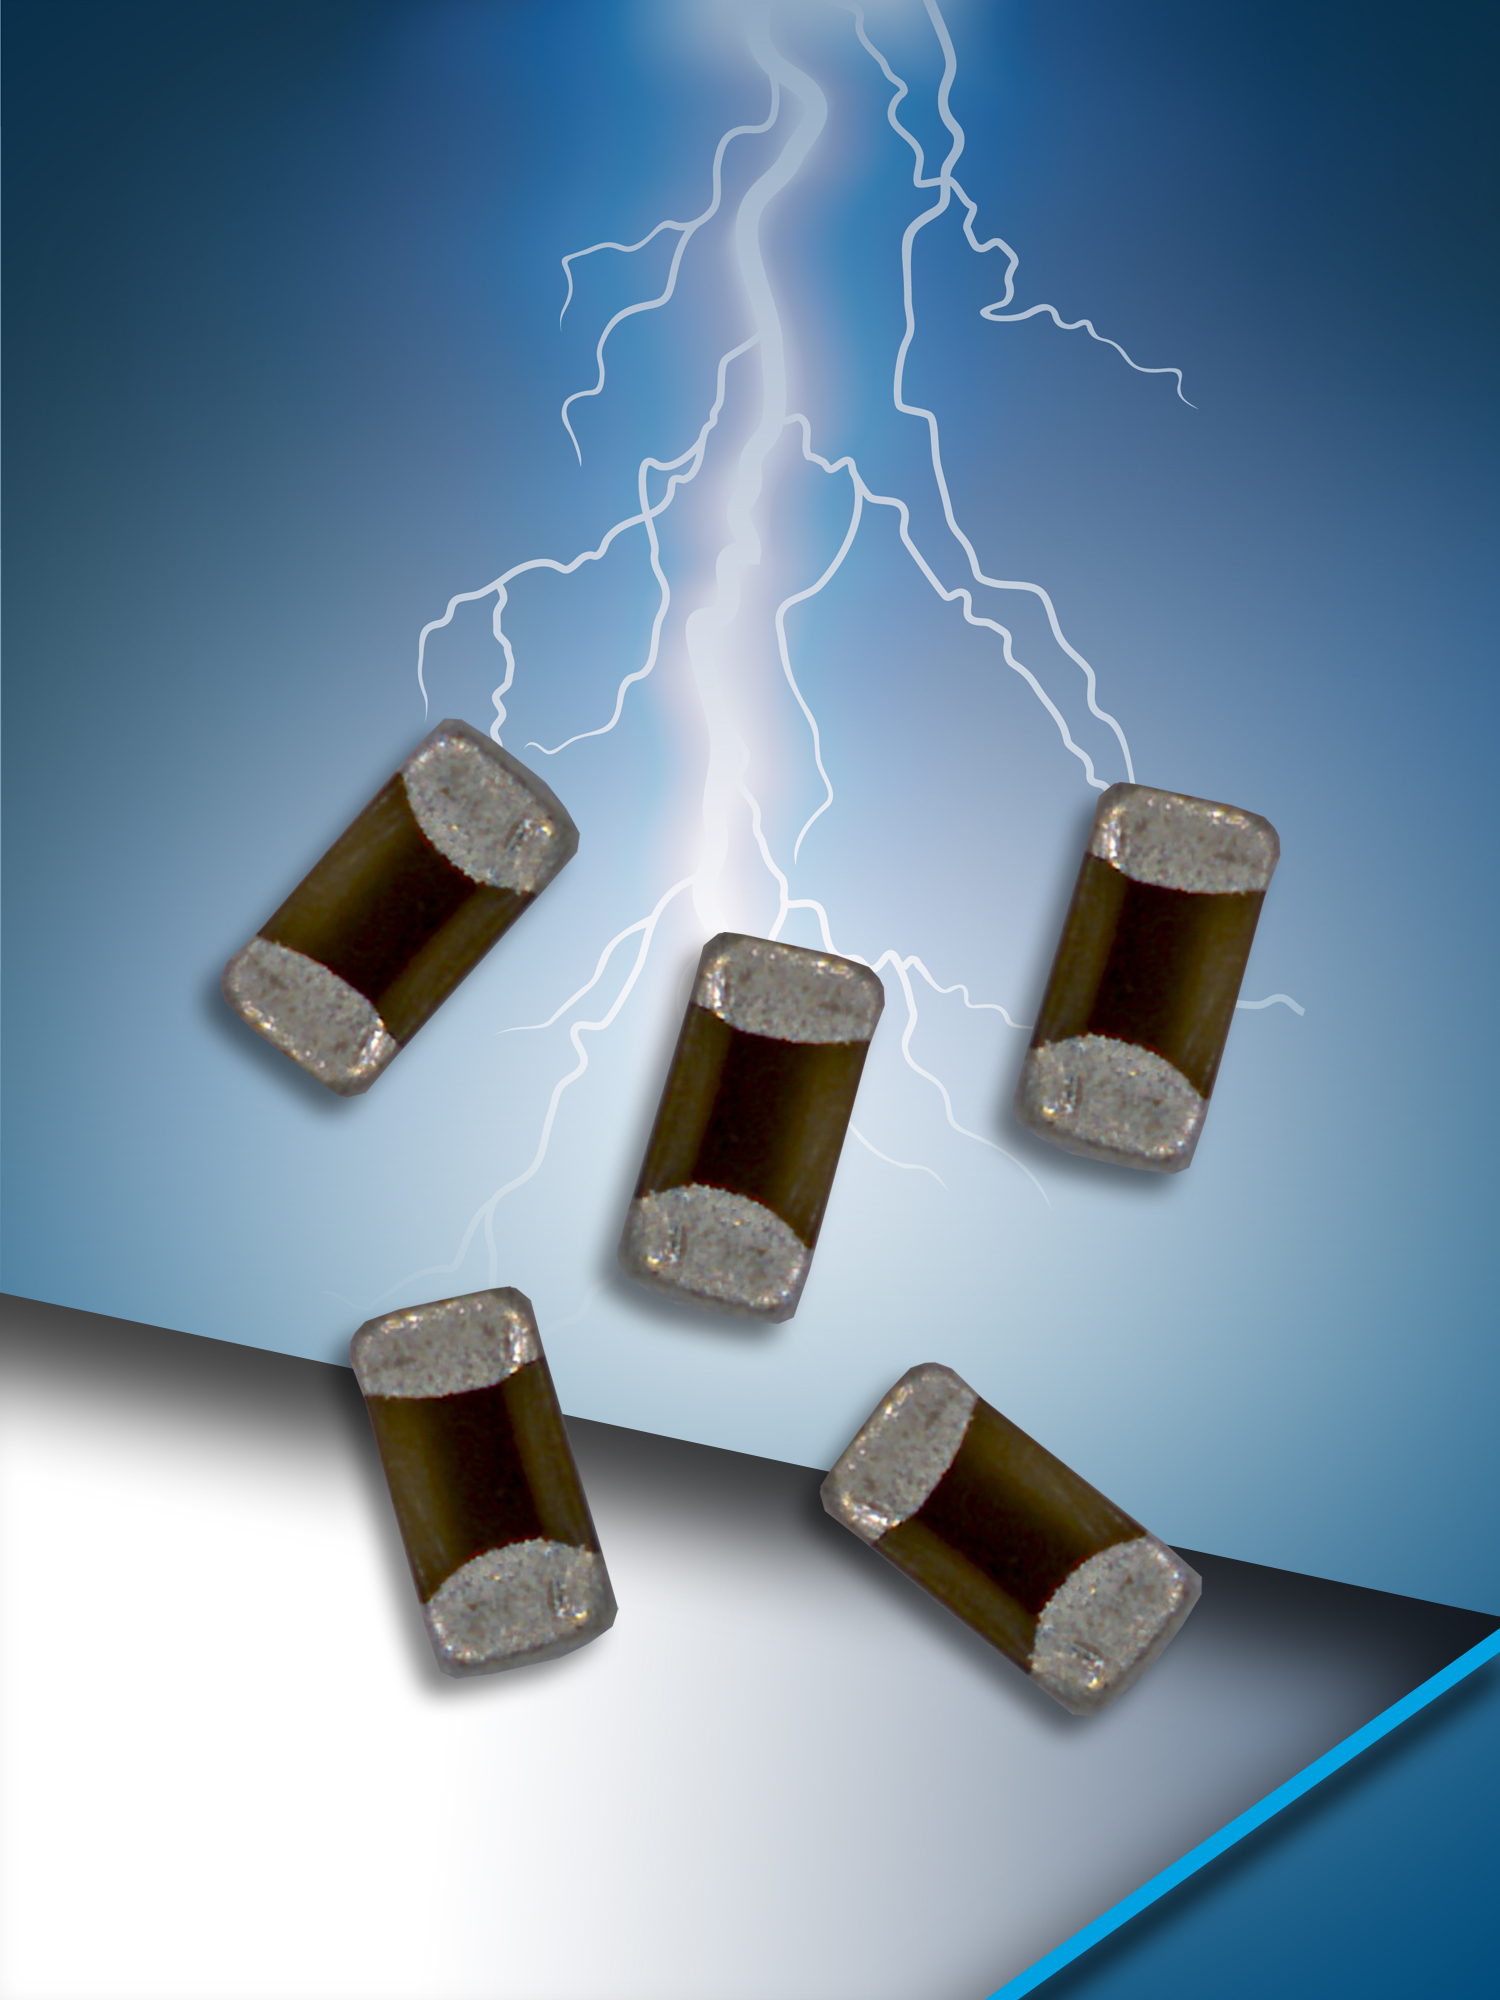 AVX Releases Leadless Bidirectional ESD Suppression Diodes for High-Speed Circuit Protection